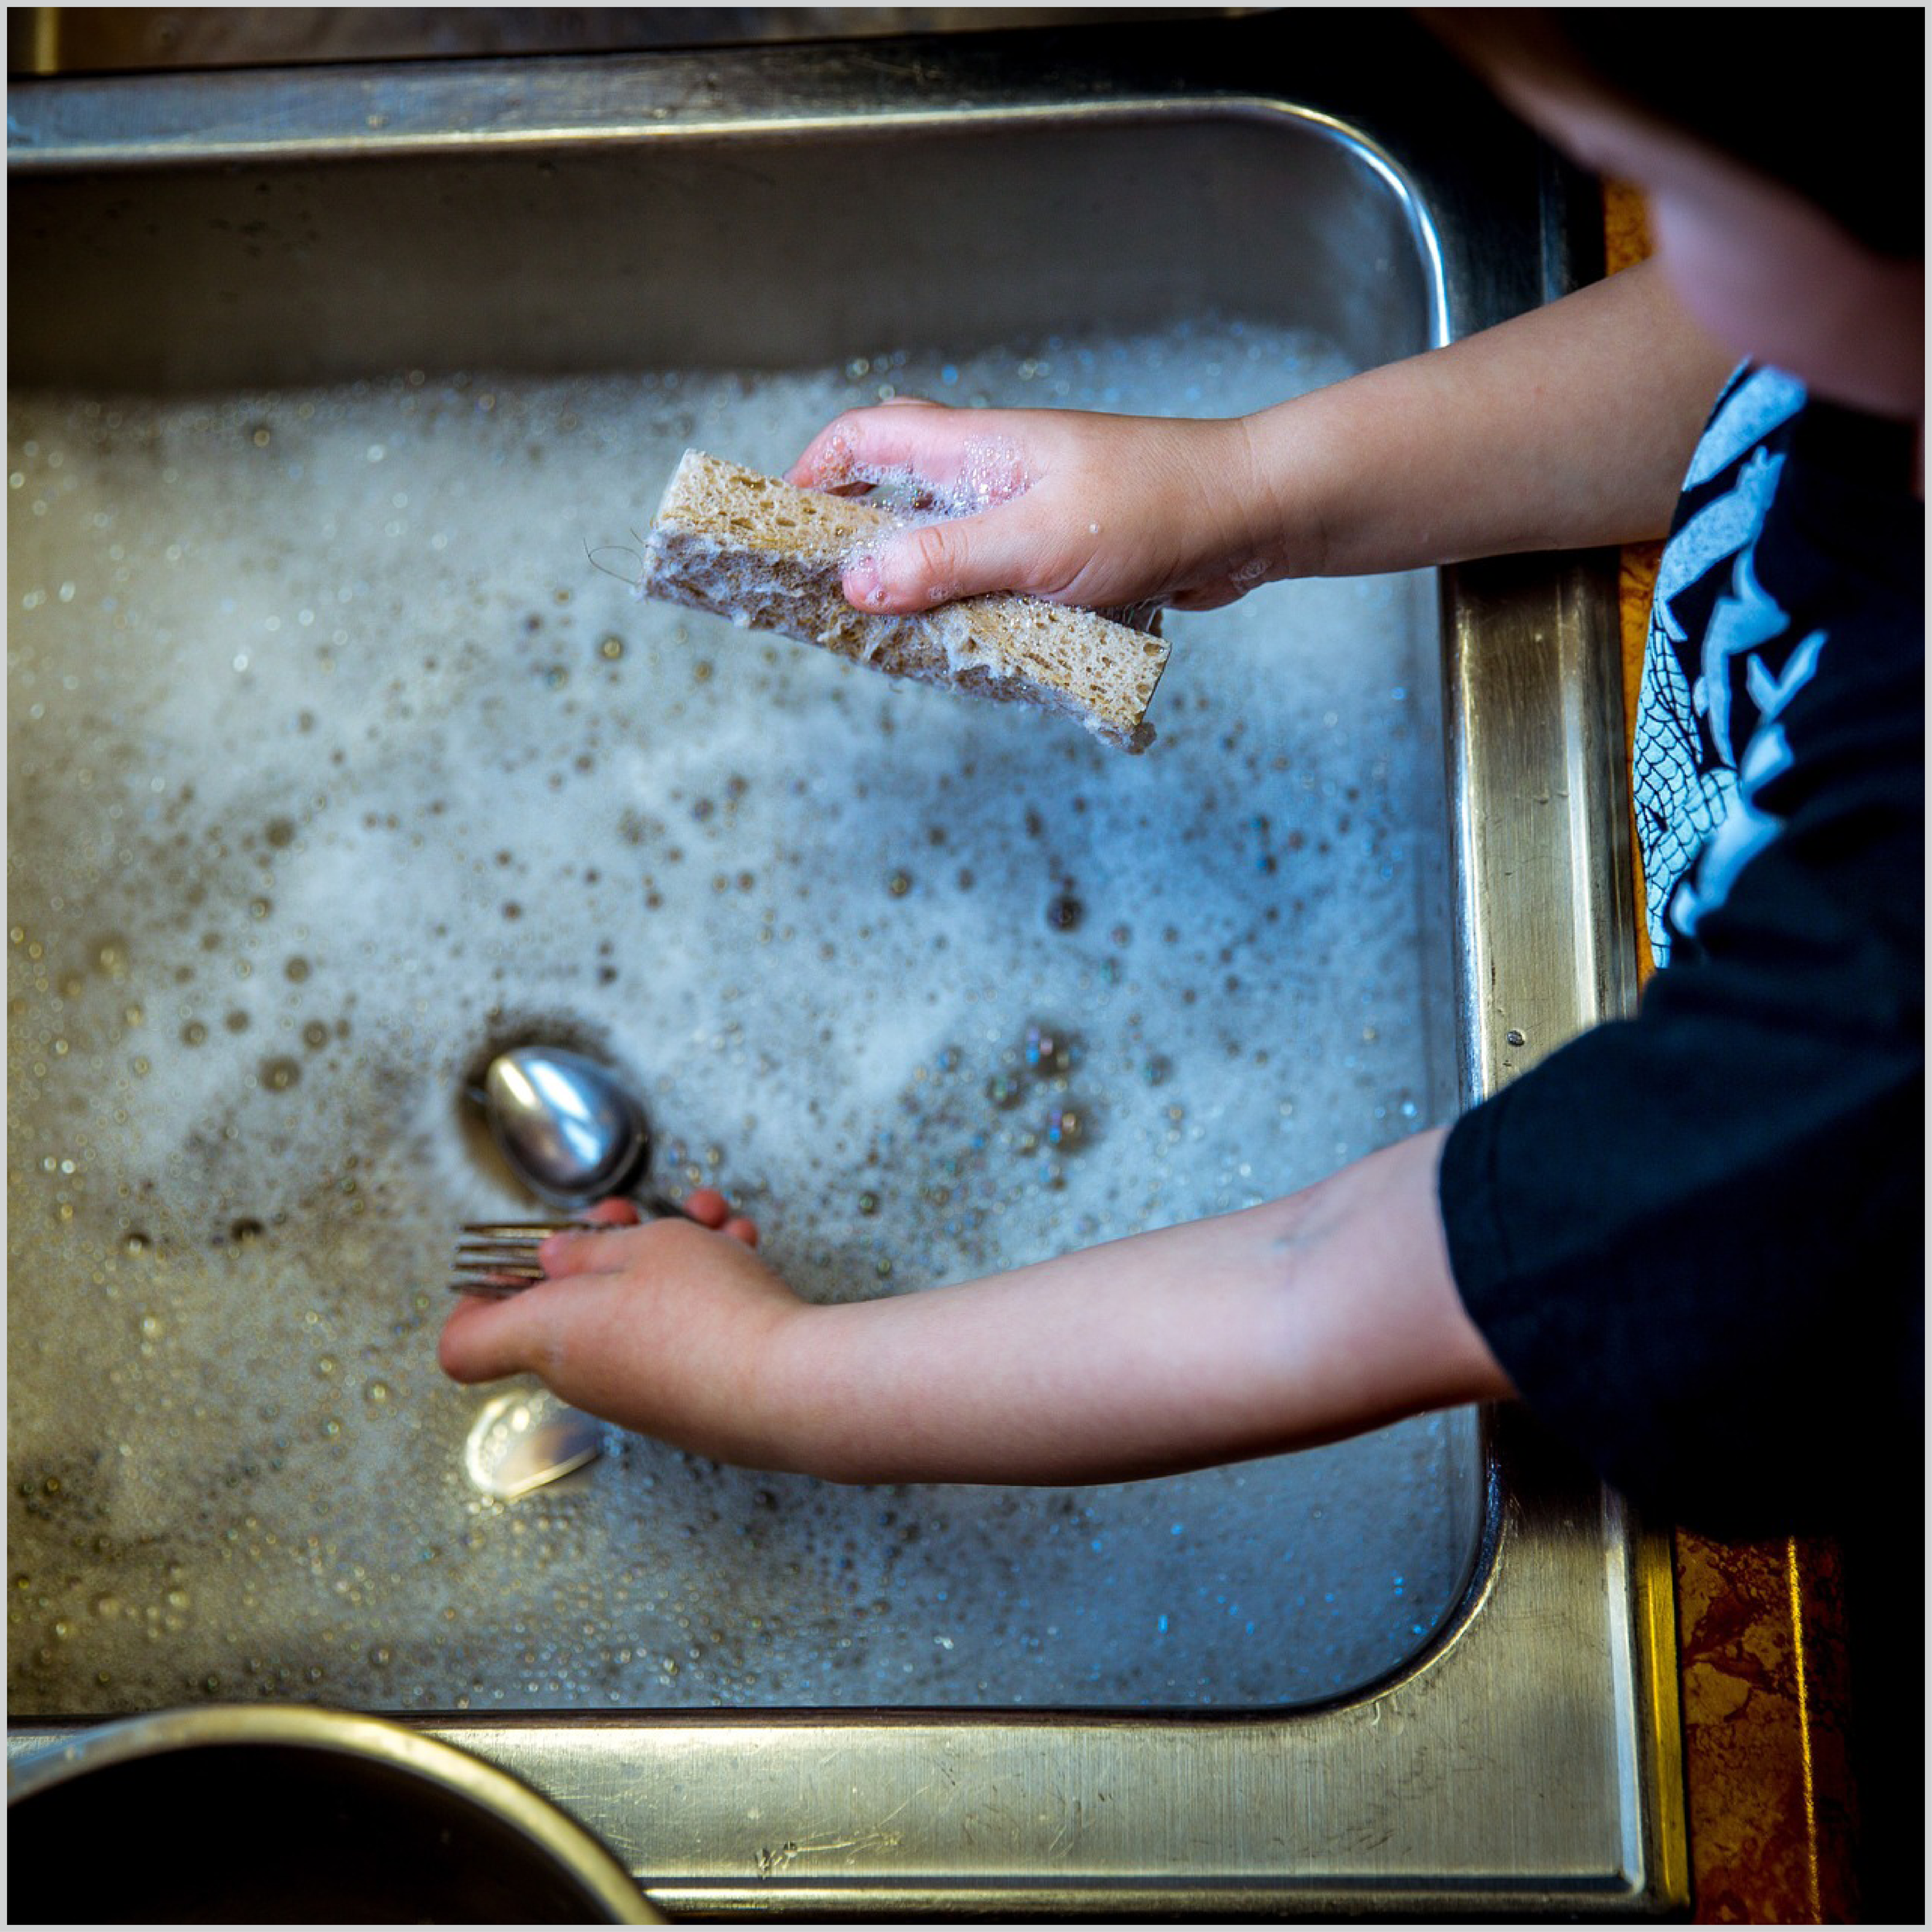 Help wash the dishes after dinner